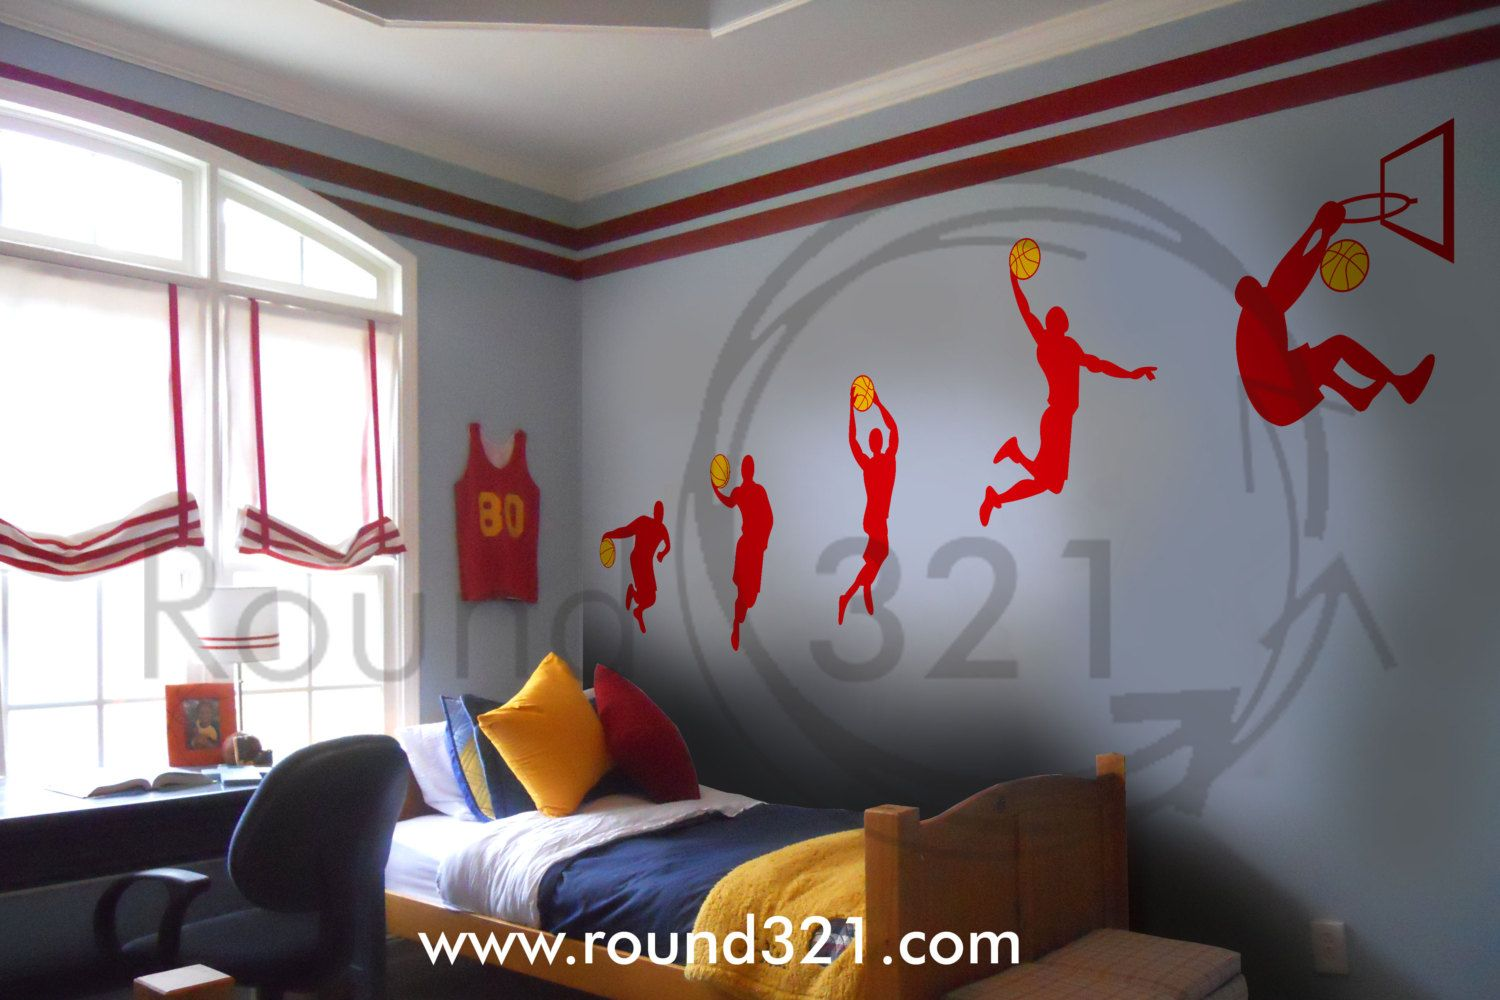 Medium / Small Basketball Player With Ball Wall Decal   Sports Wall  Decoration For Room Or Playroom